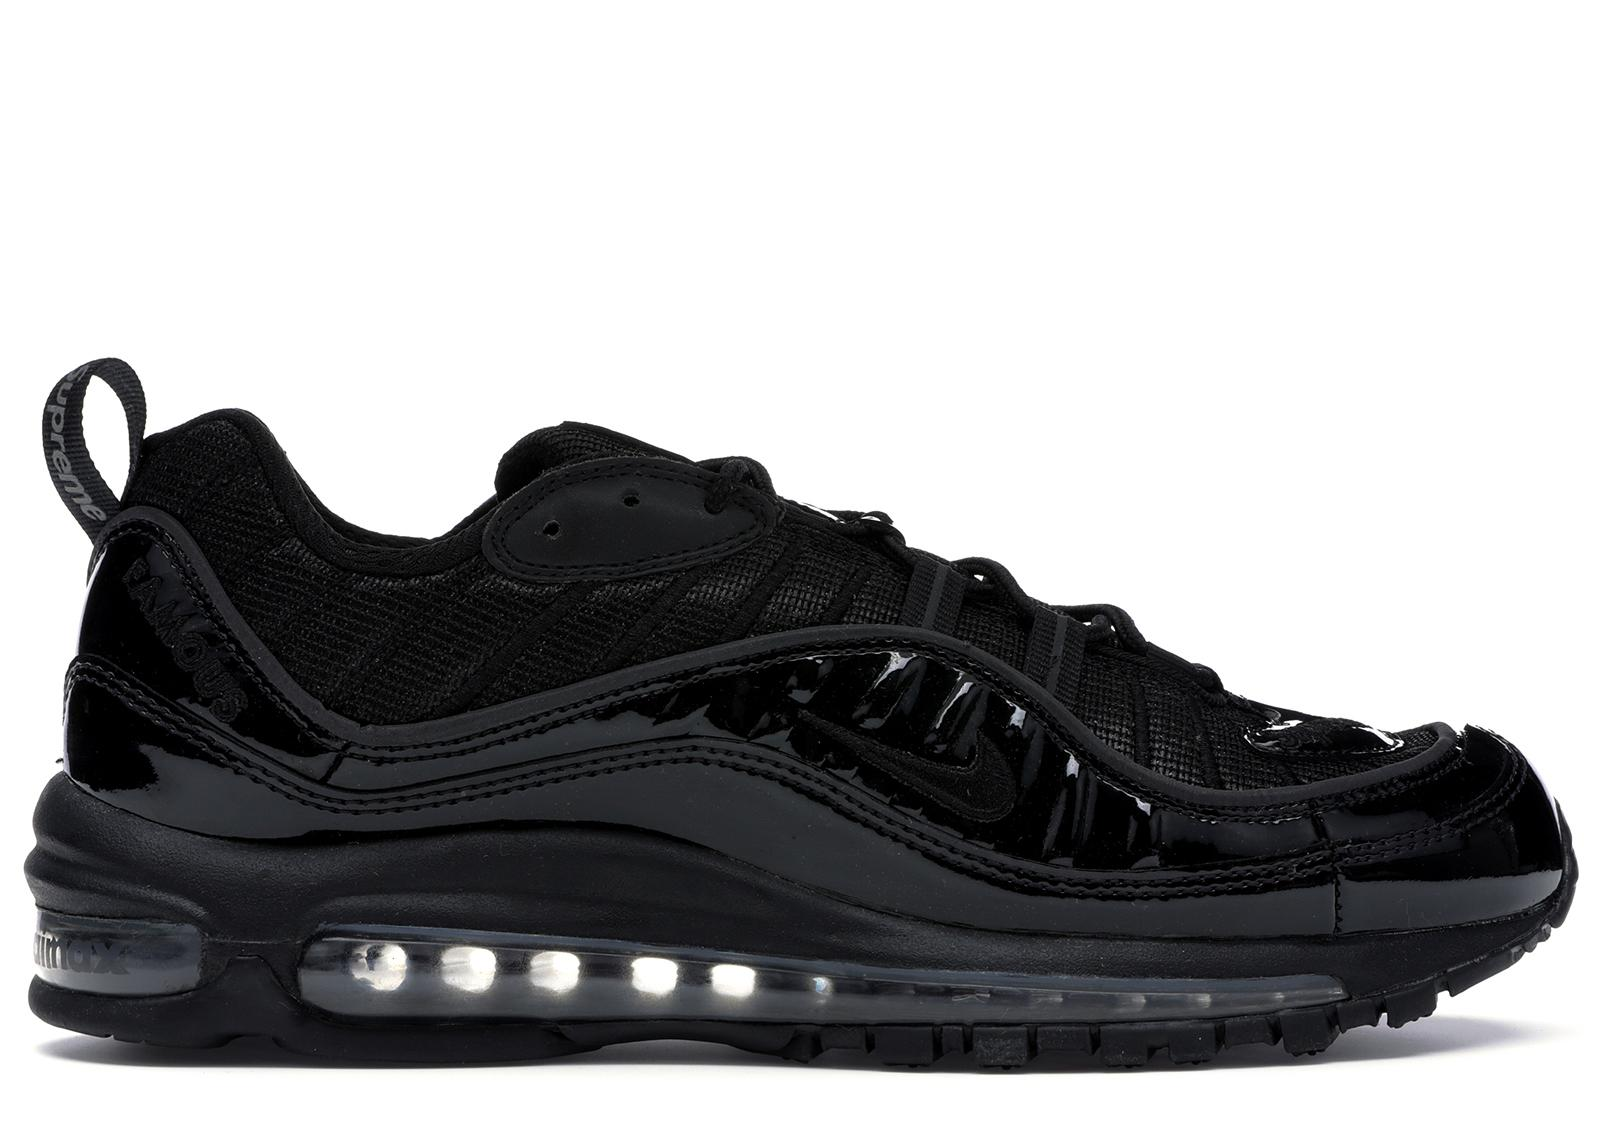 official photos 63336 51f27 Men's Air Max 98 Supreme Black